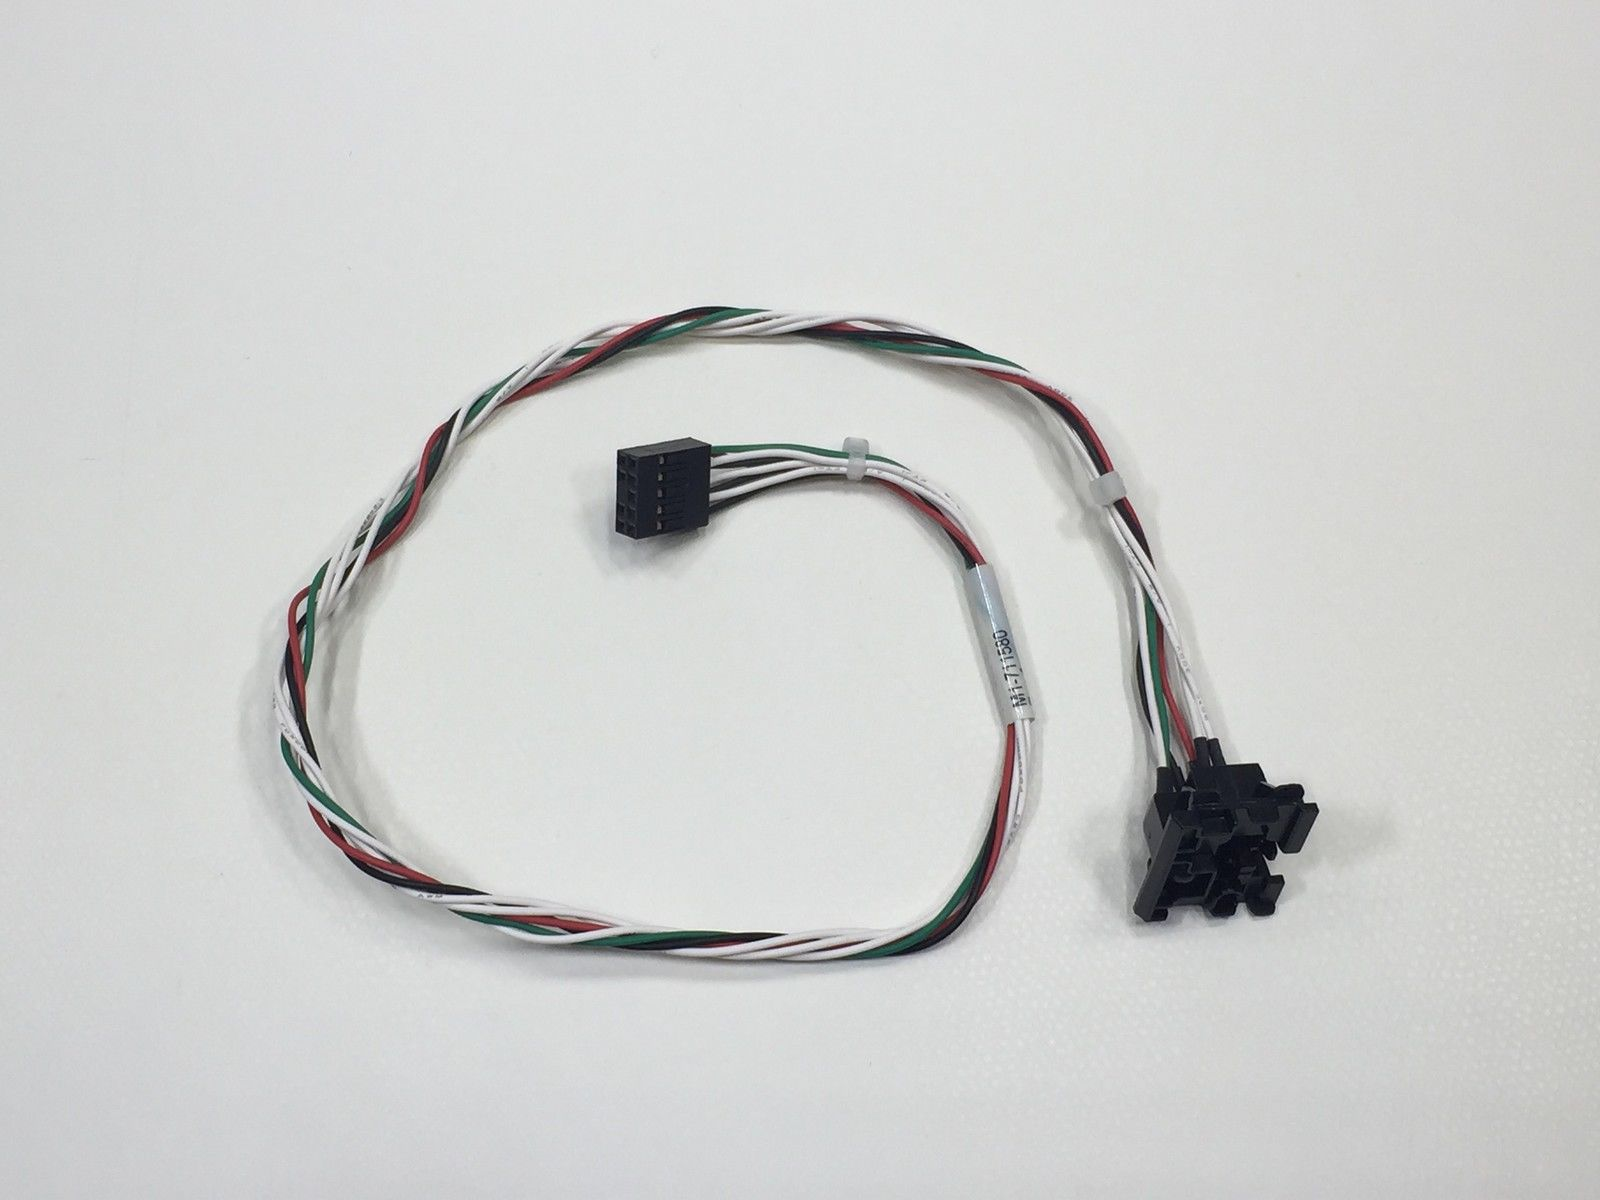 LED Cable Assembly